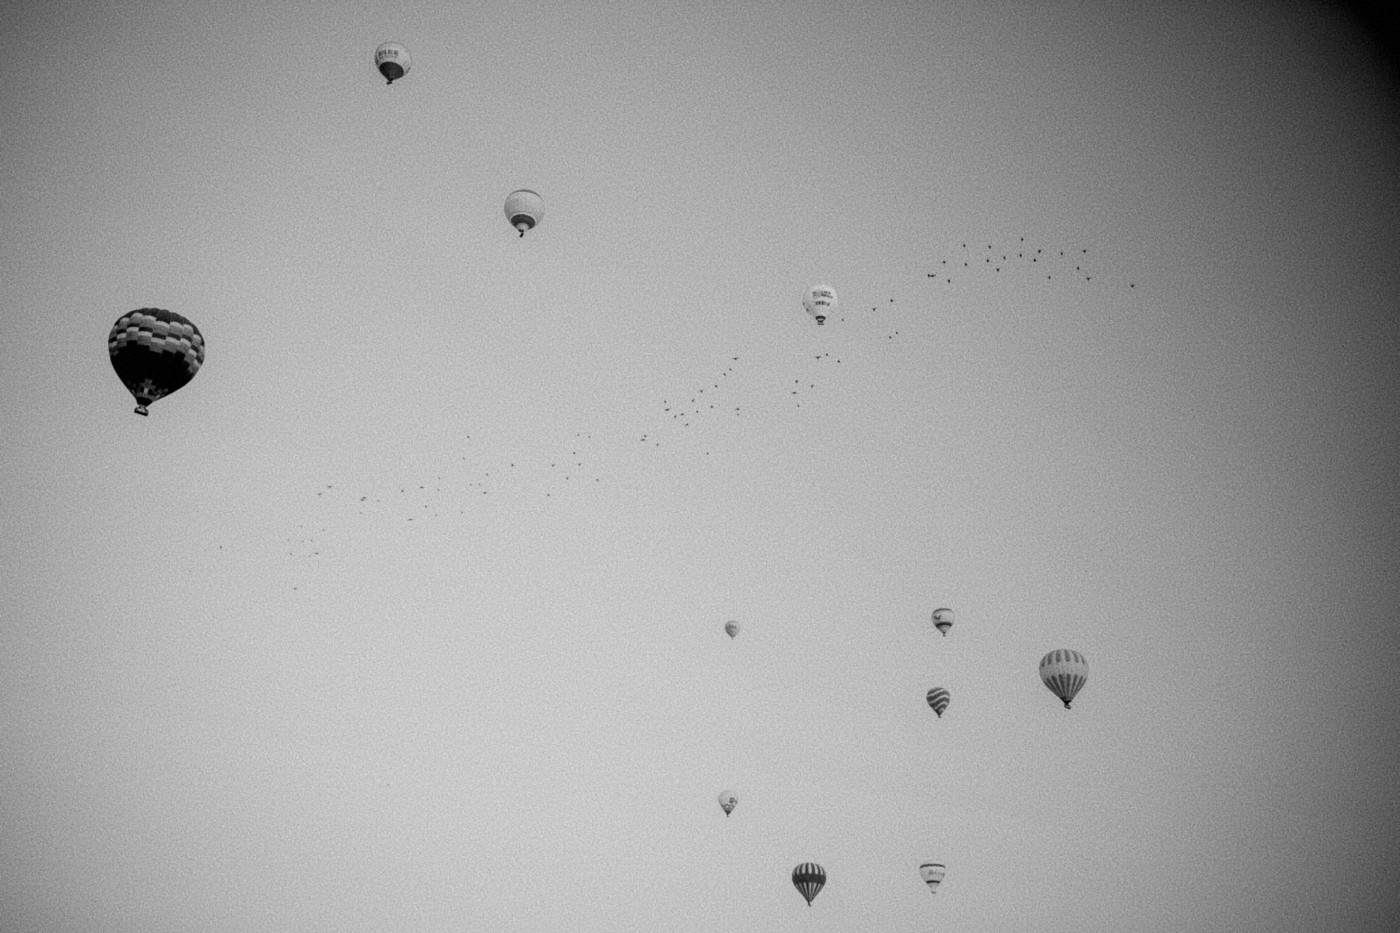 Balloons soaring through the sky after much preparation.